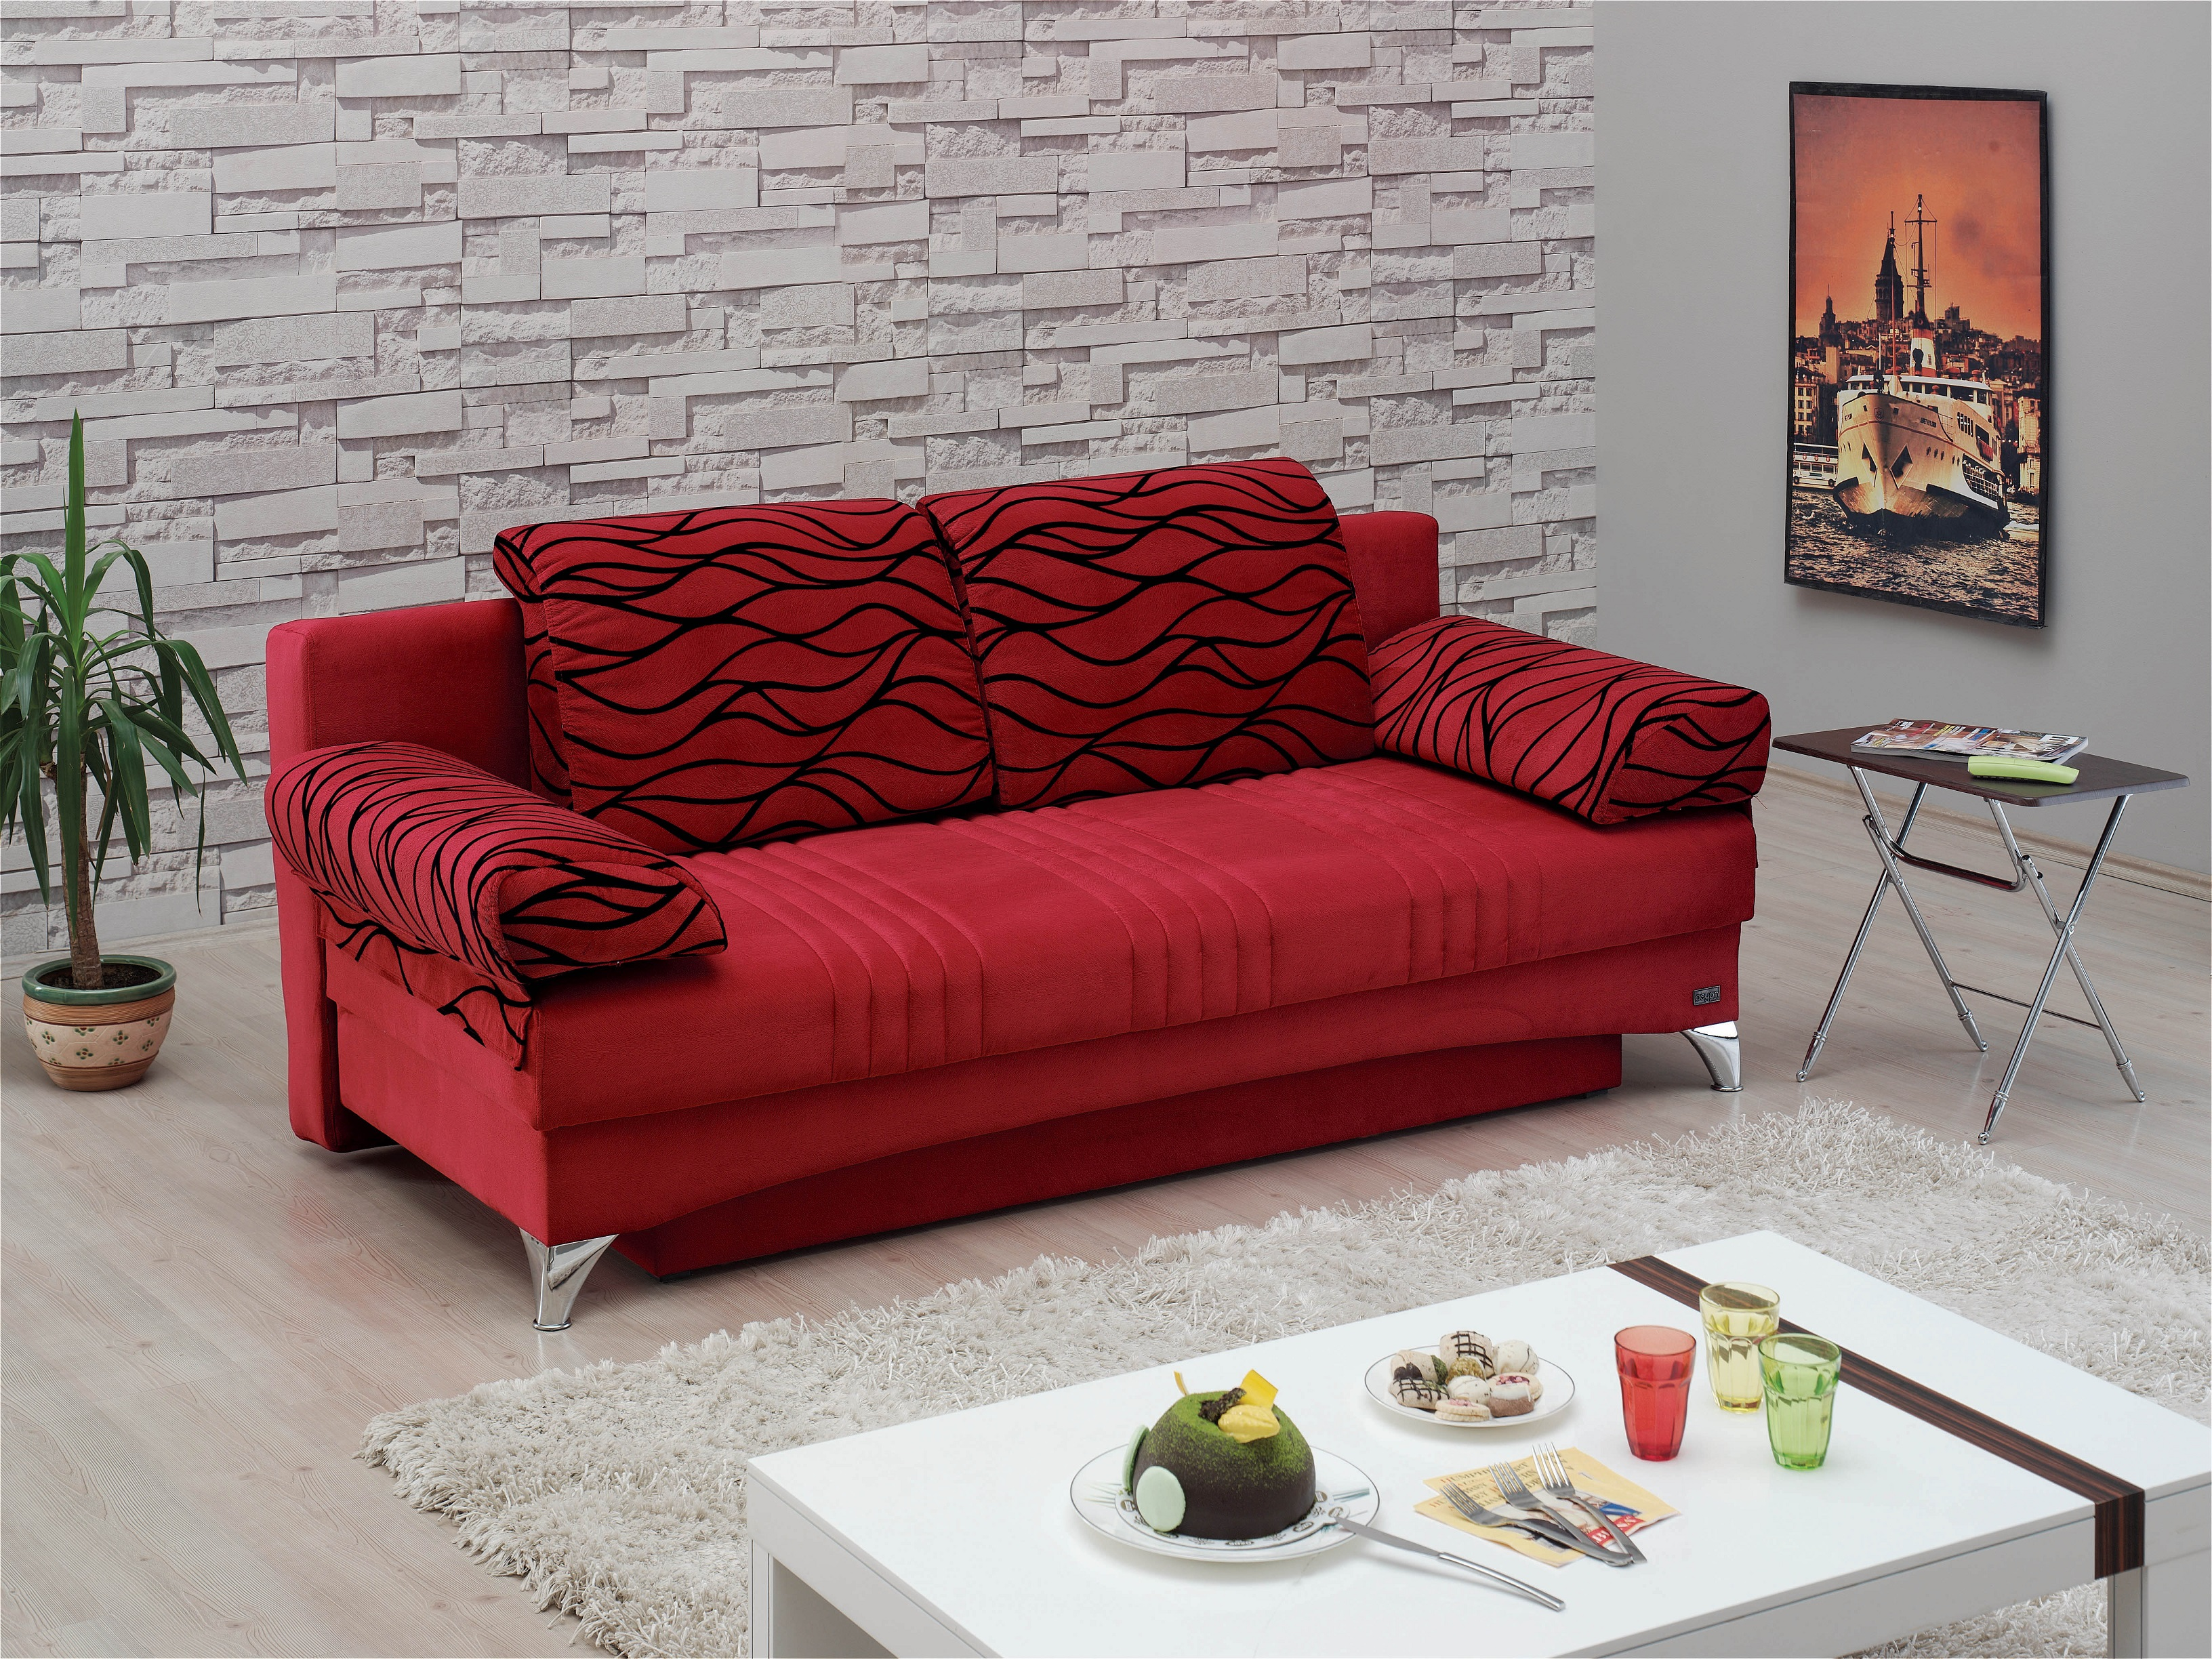 daisy sofa bed red sofa bed red daisy red